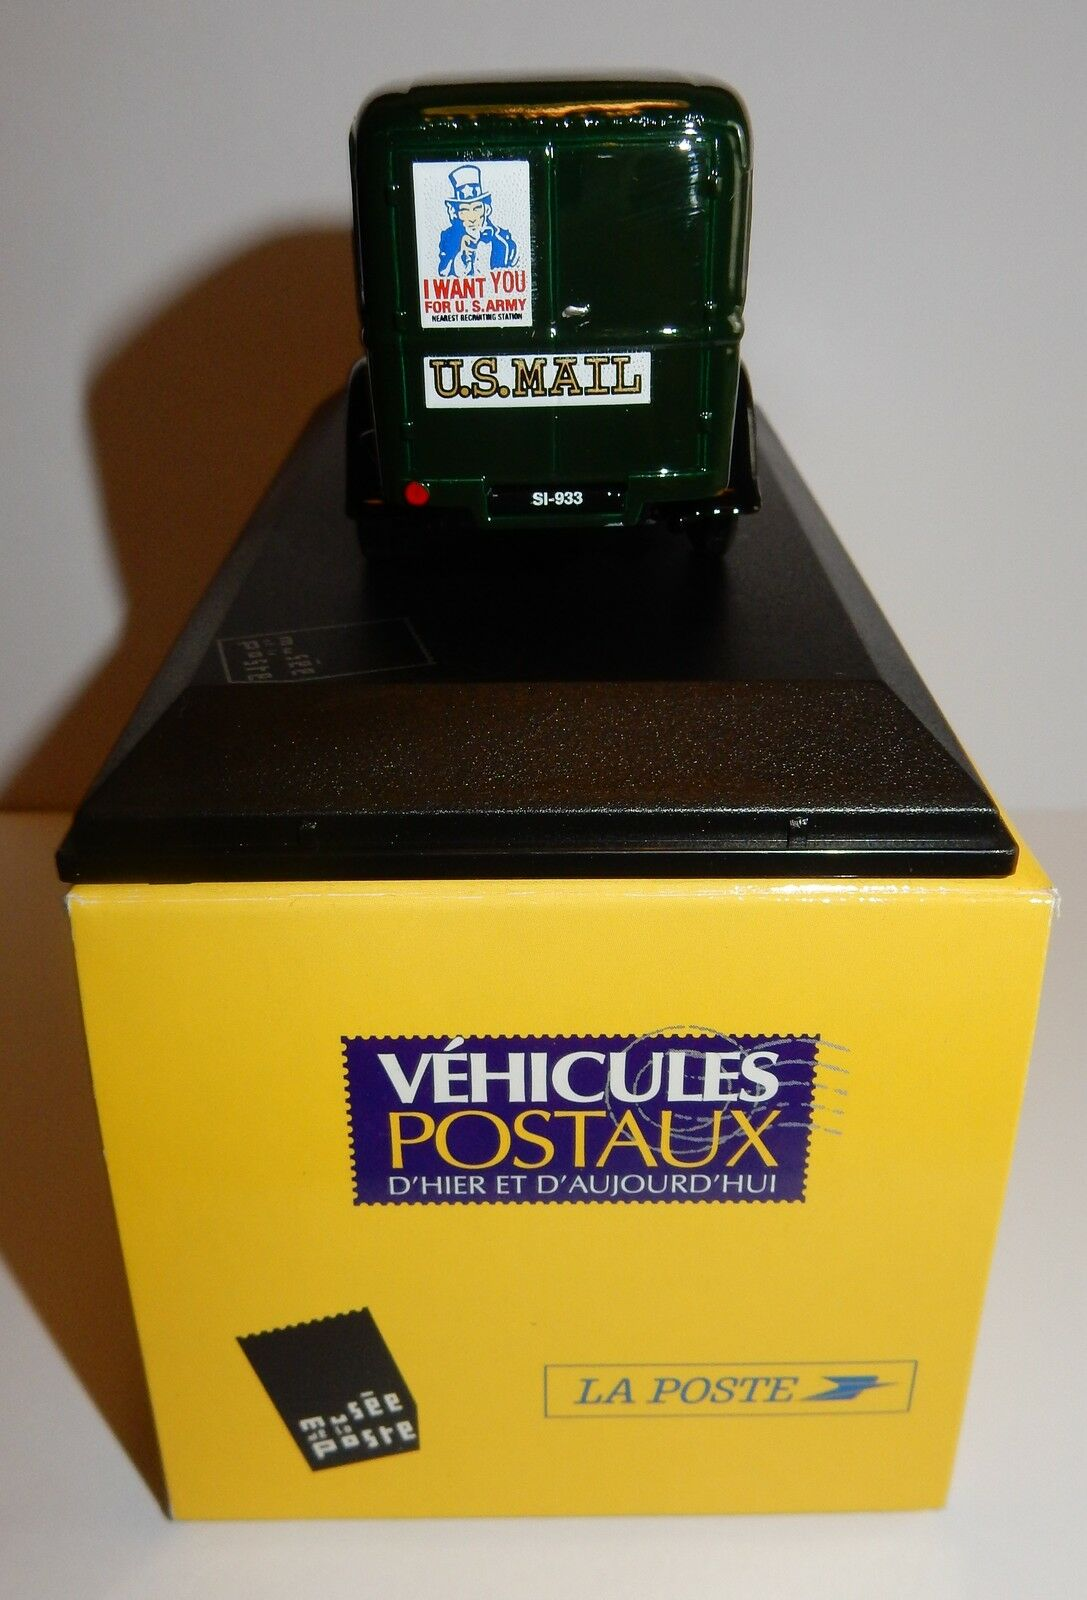 RARE MUSEE ELIGOR FORD V8 USA US MAIL 236 POSTES POSTES POSTES POSTE PTT 1 43 in luxe BOX 4cac44